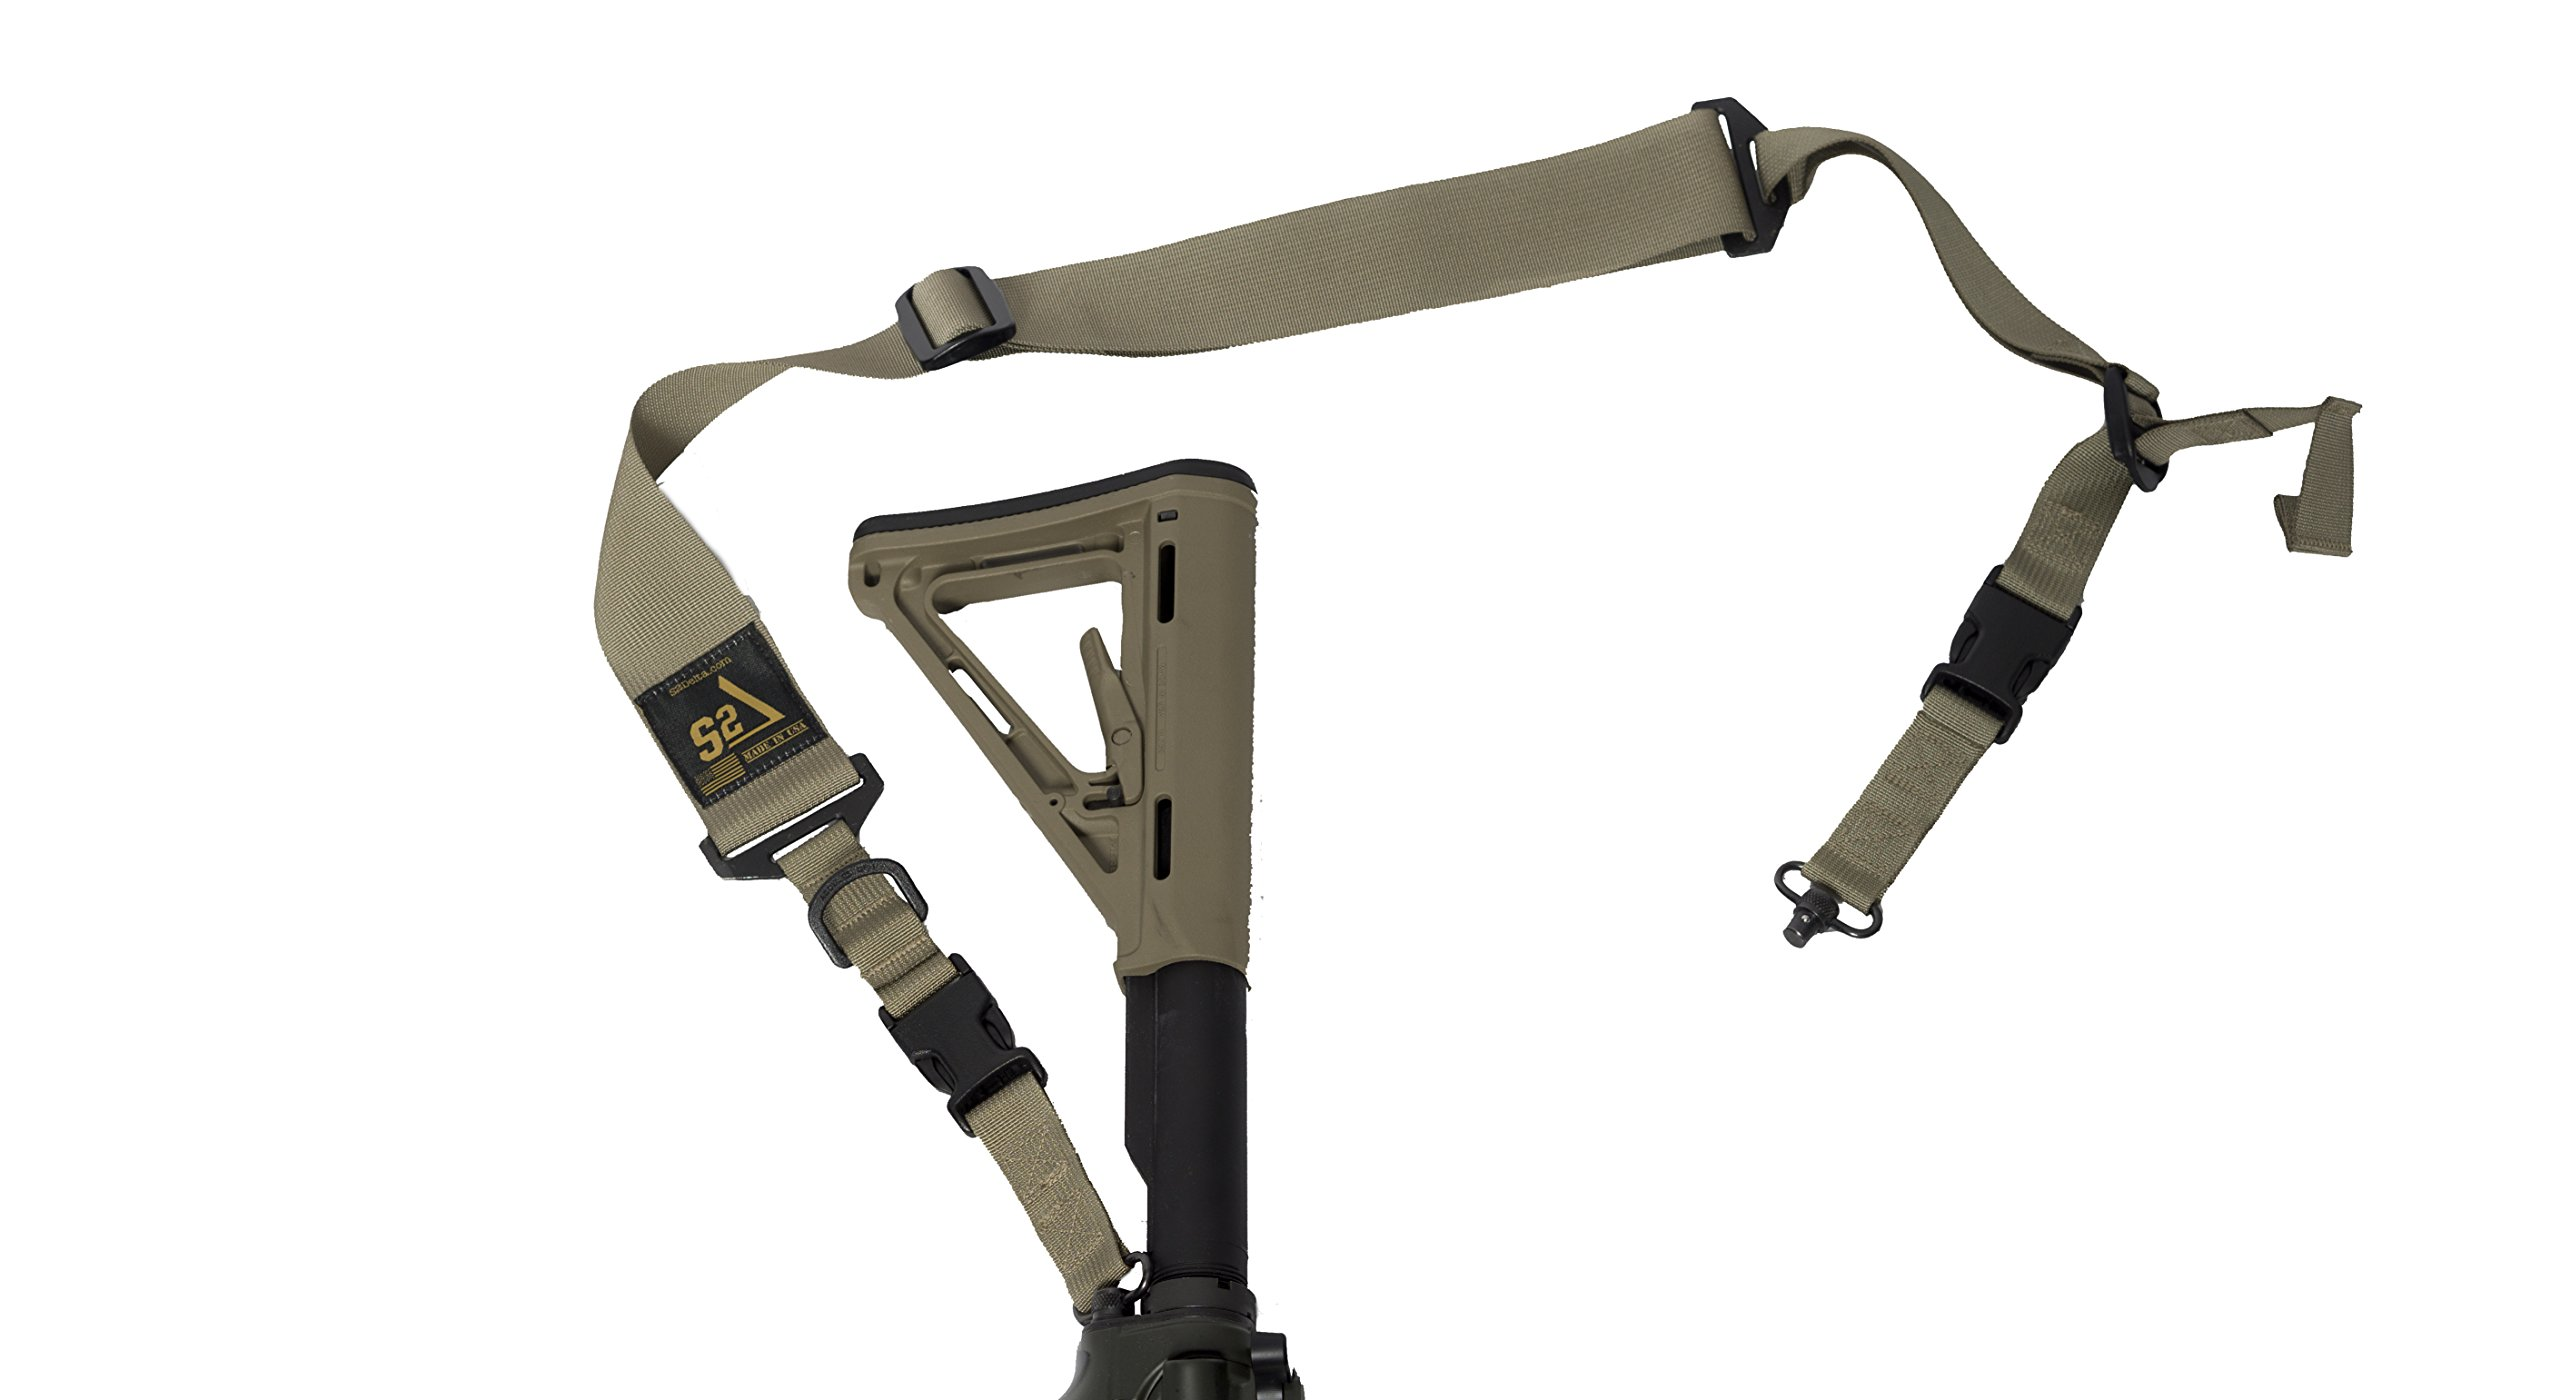 S2Delta - USA Made 2 Point Rifle Sling, Quick Adjustment, Modular Attachment Connections, Comfortable 2'' Wide Shoulder Strap to 1'' Attachment Ends (Coyote with Push Button Swivels) by S2Delta